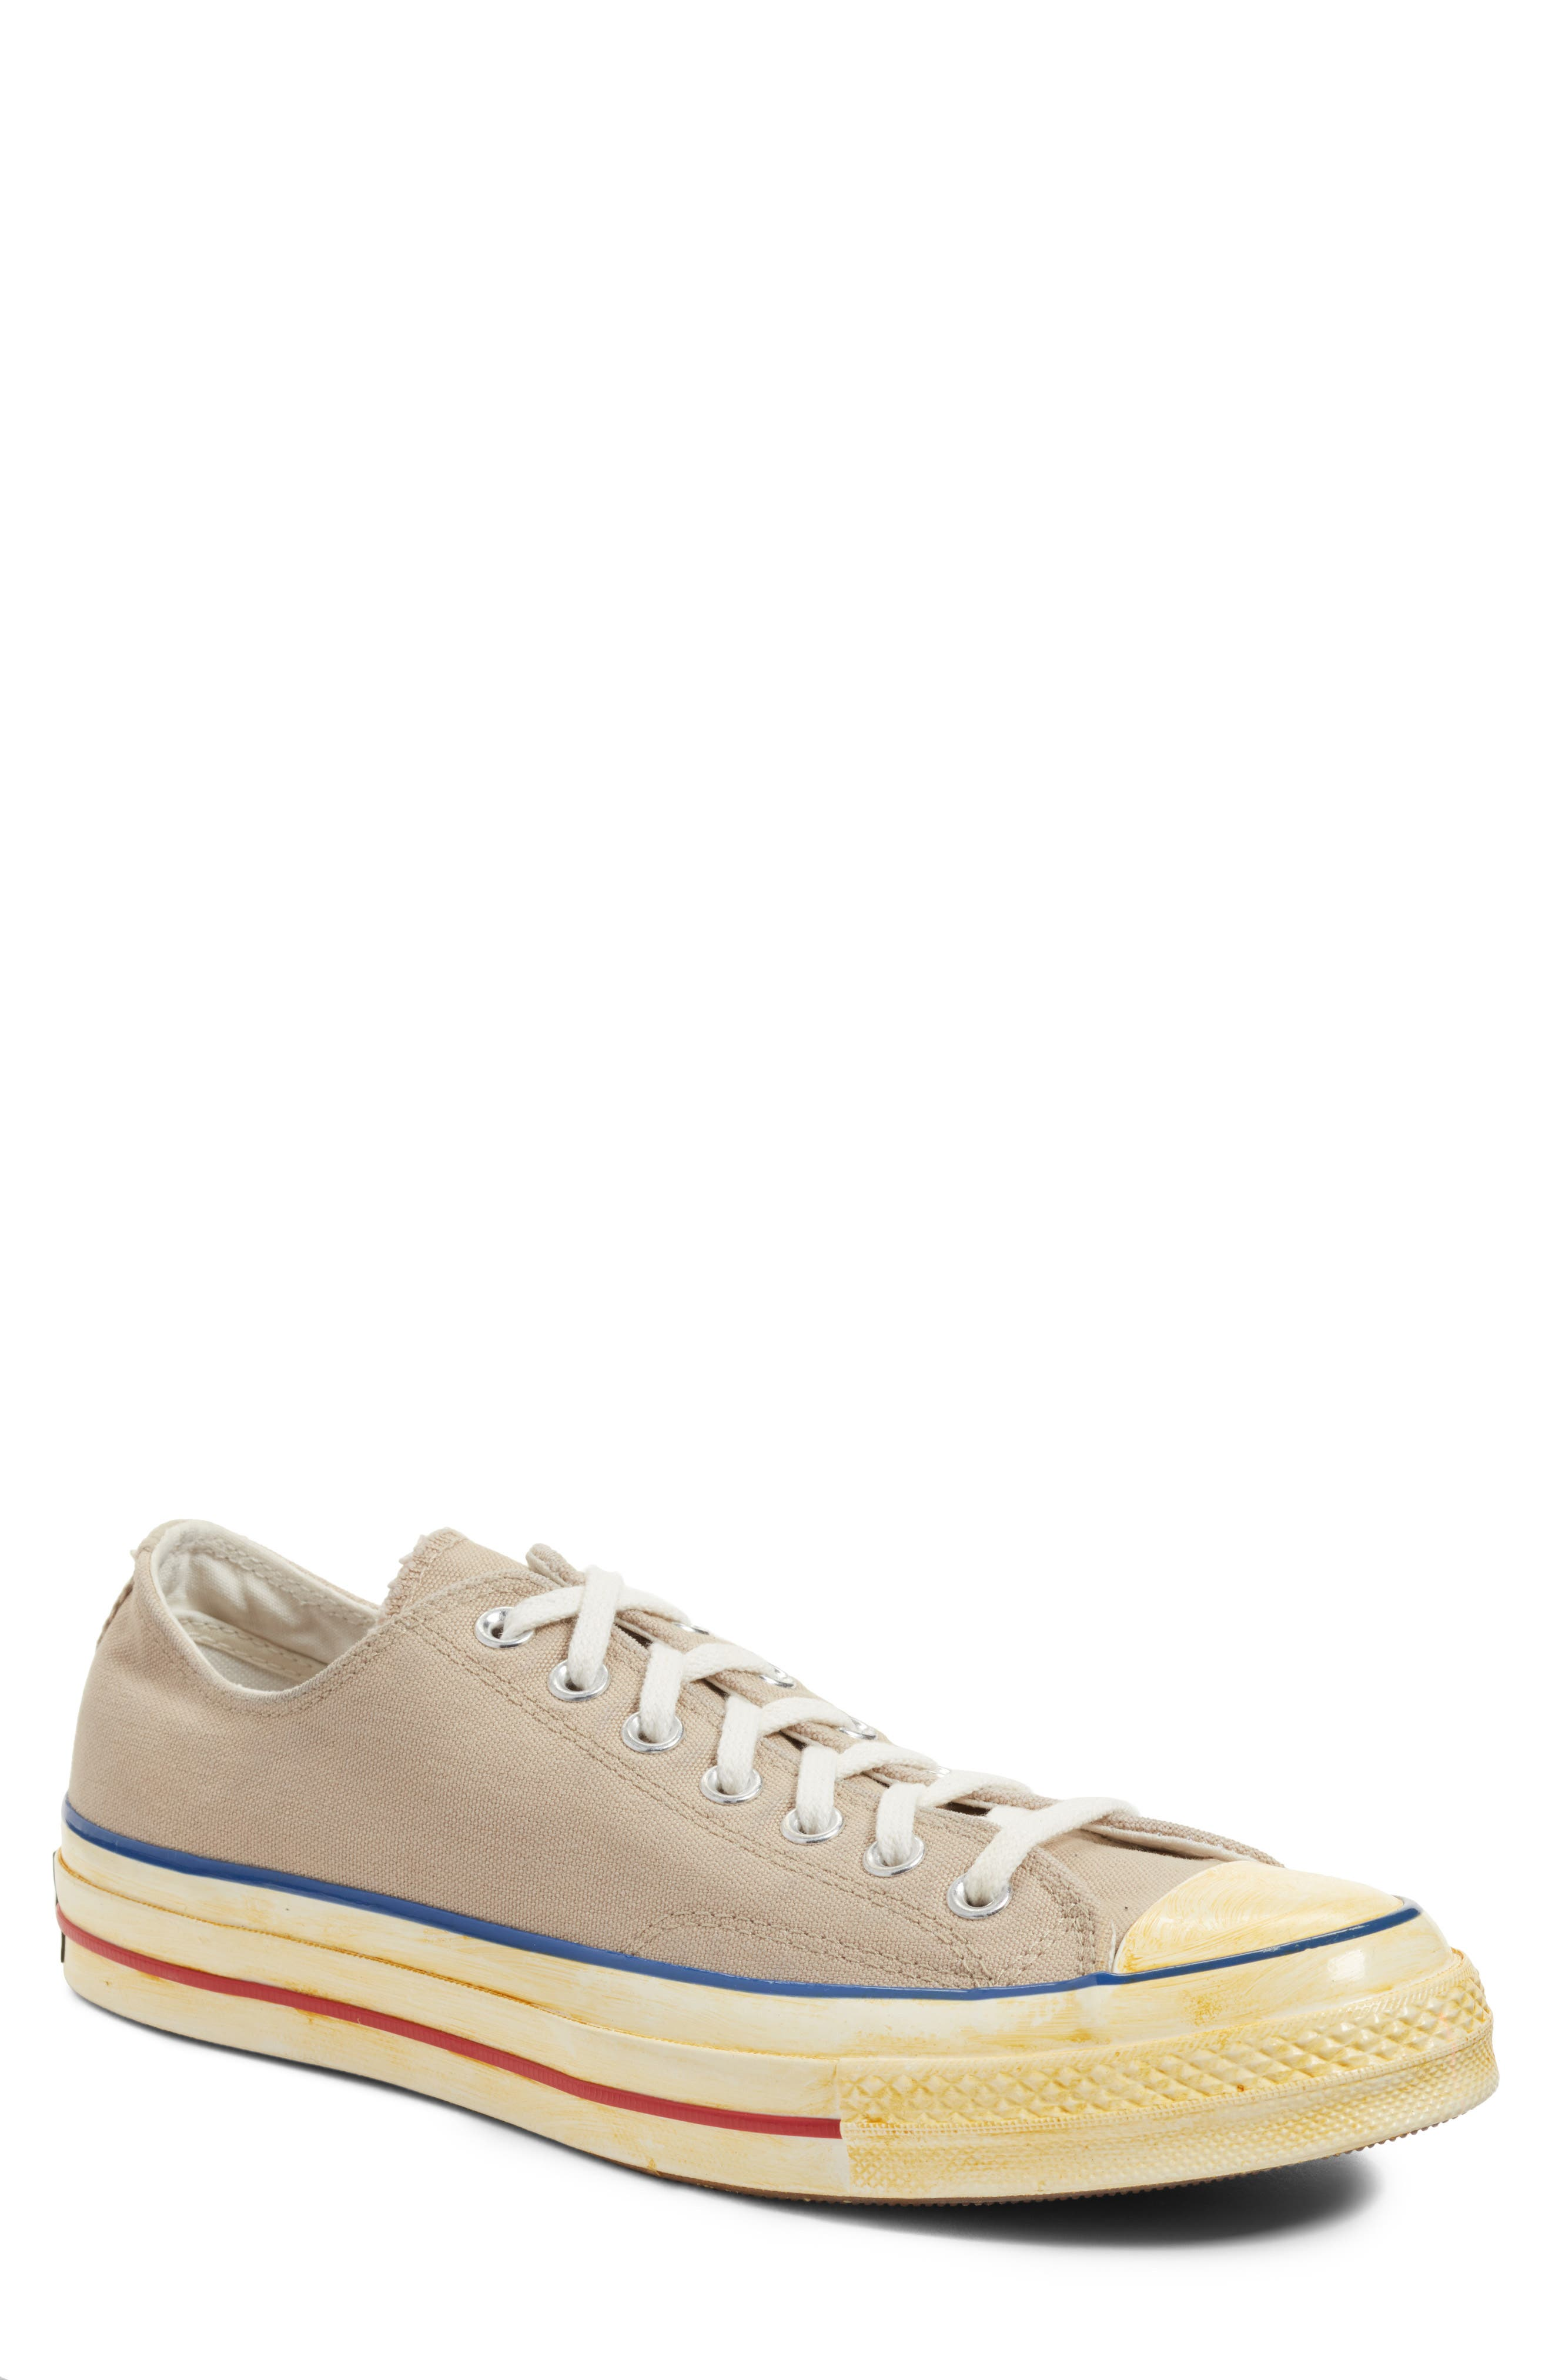 Chuck Taylor<sup>®</sup> All Star<sup>®</sup> 70 Low Top Sneaker,                             Main thumbnail 1, color,                             270